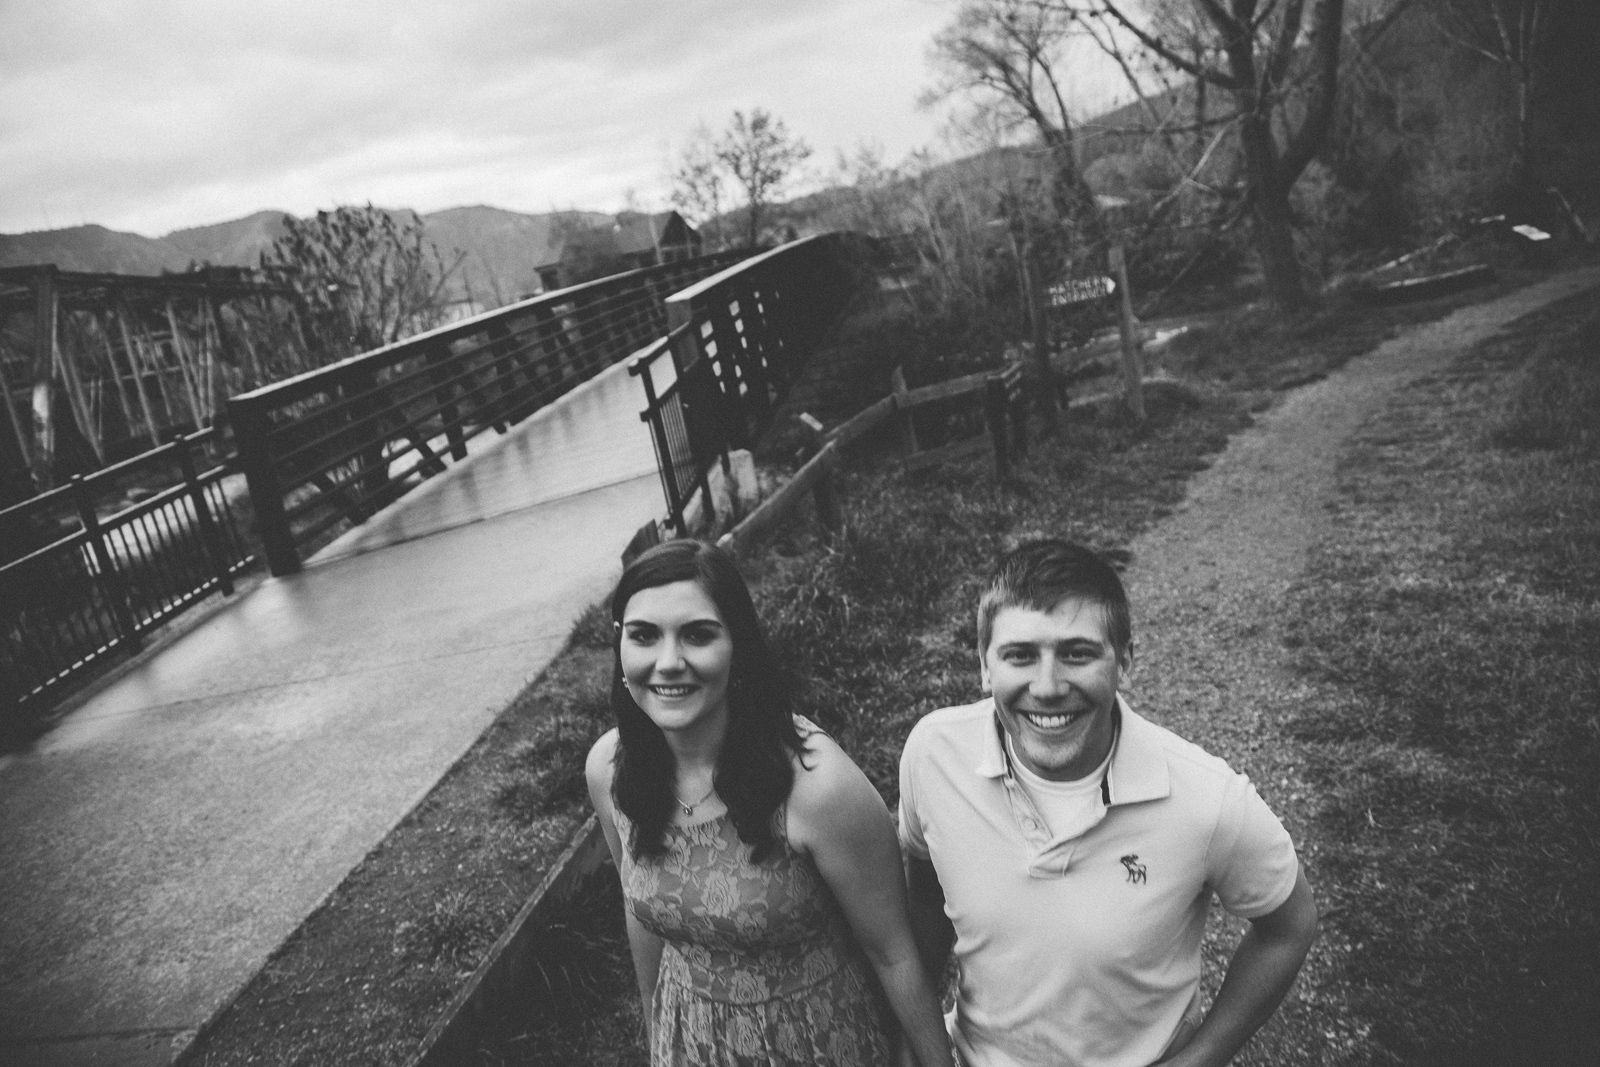 016-engagement-trees-fun-laughing-durango-colorado-farmington